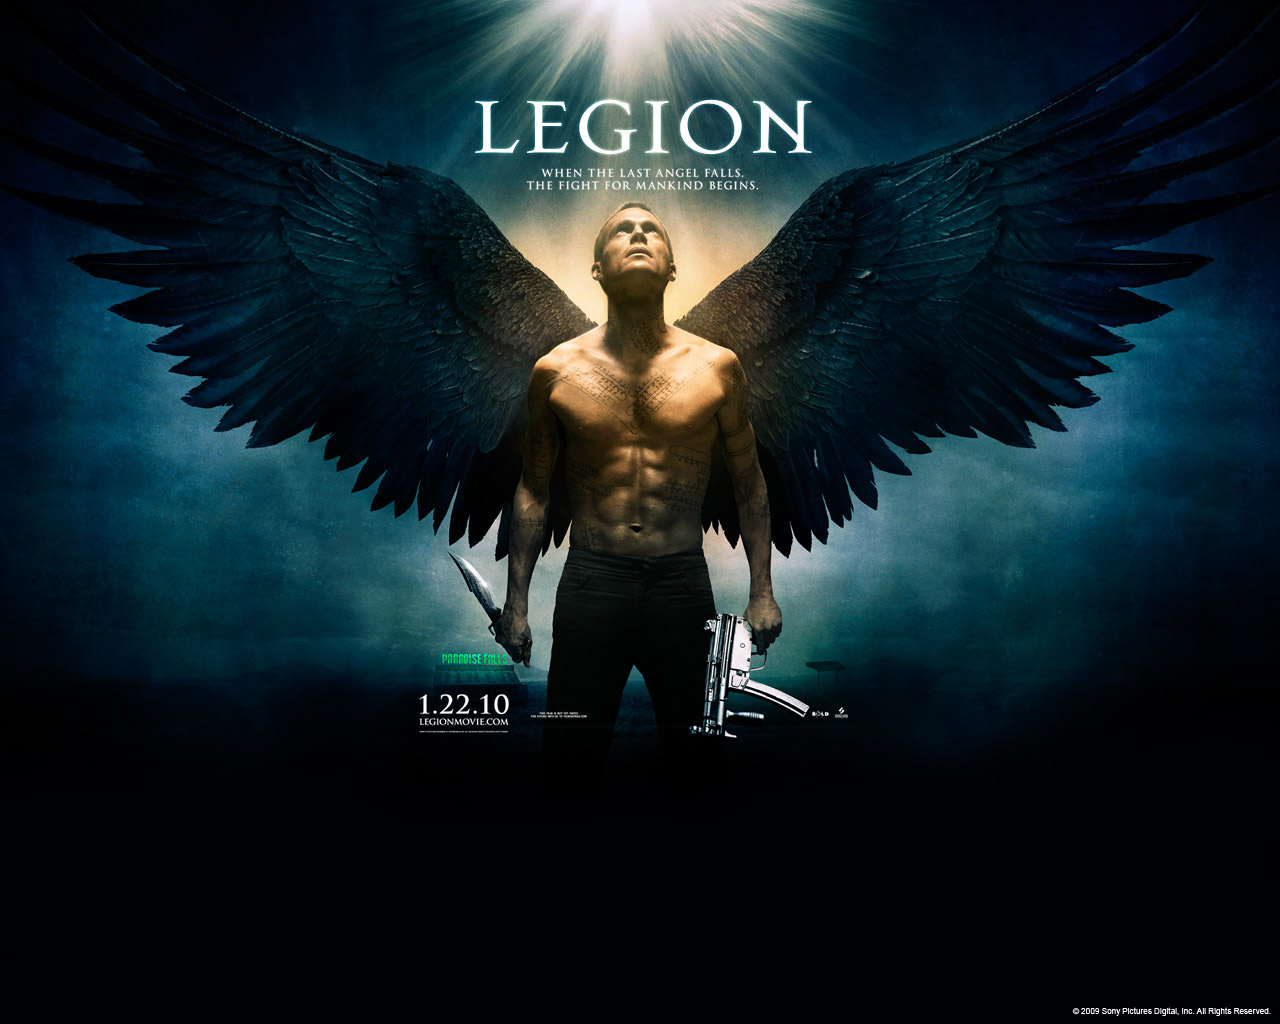 http://3.bp.blogspot.com/_V6TVDECge74/TGuDb8T9K_I/AAAAAAAABC0/Sn2GkBCTif8/s1600/Paul_Bettany_in_Legion_Wallpaper_1_1280.jpg